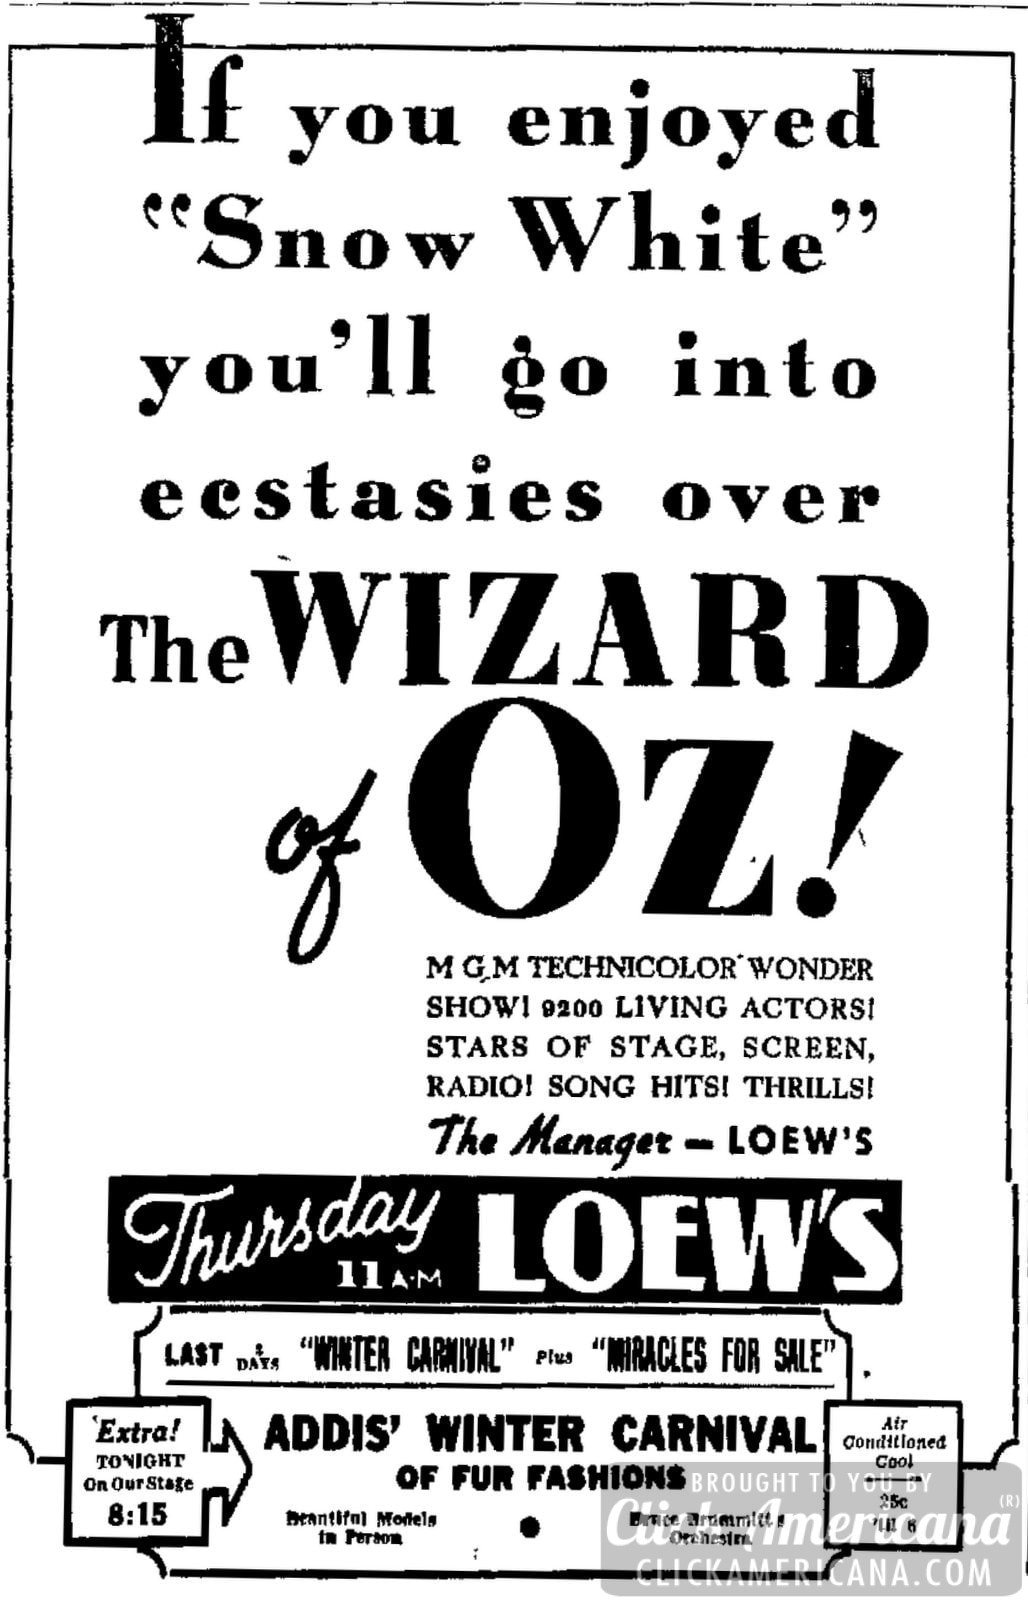 A marvelous screen show! Wizard of Oz in theaters (1939)